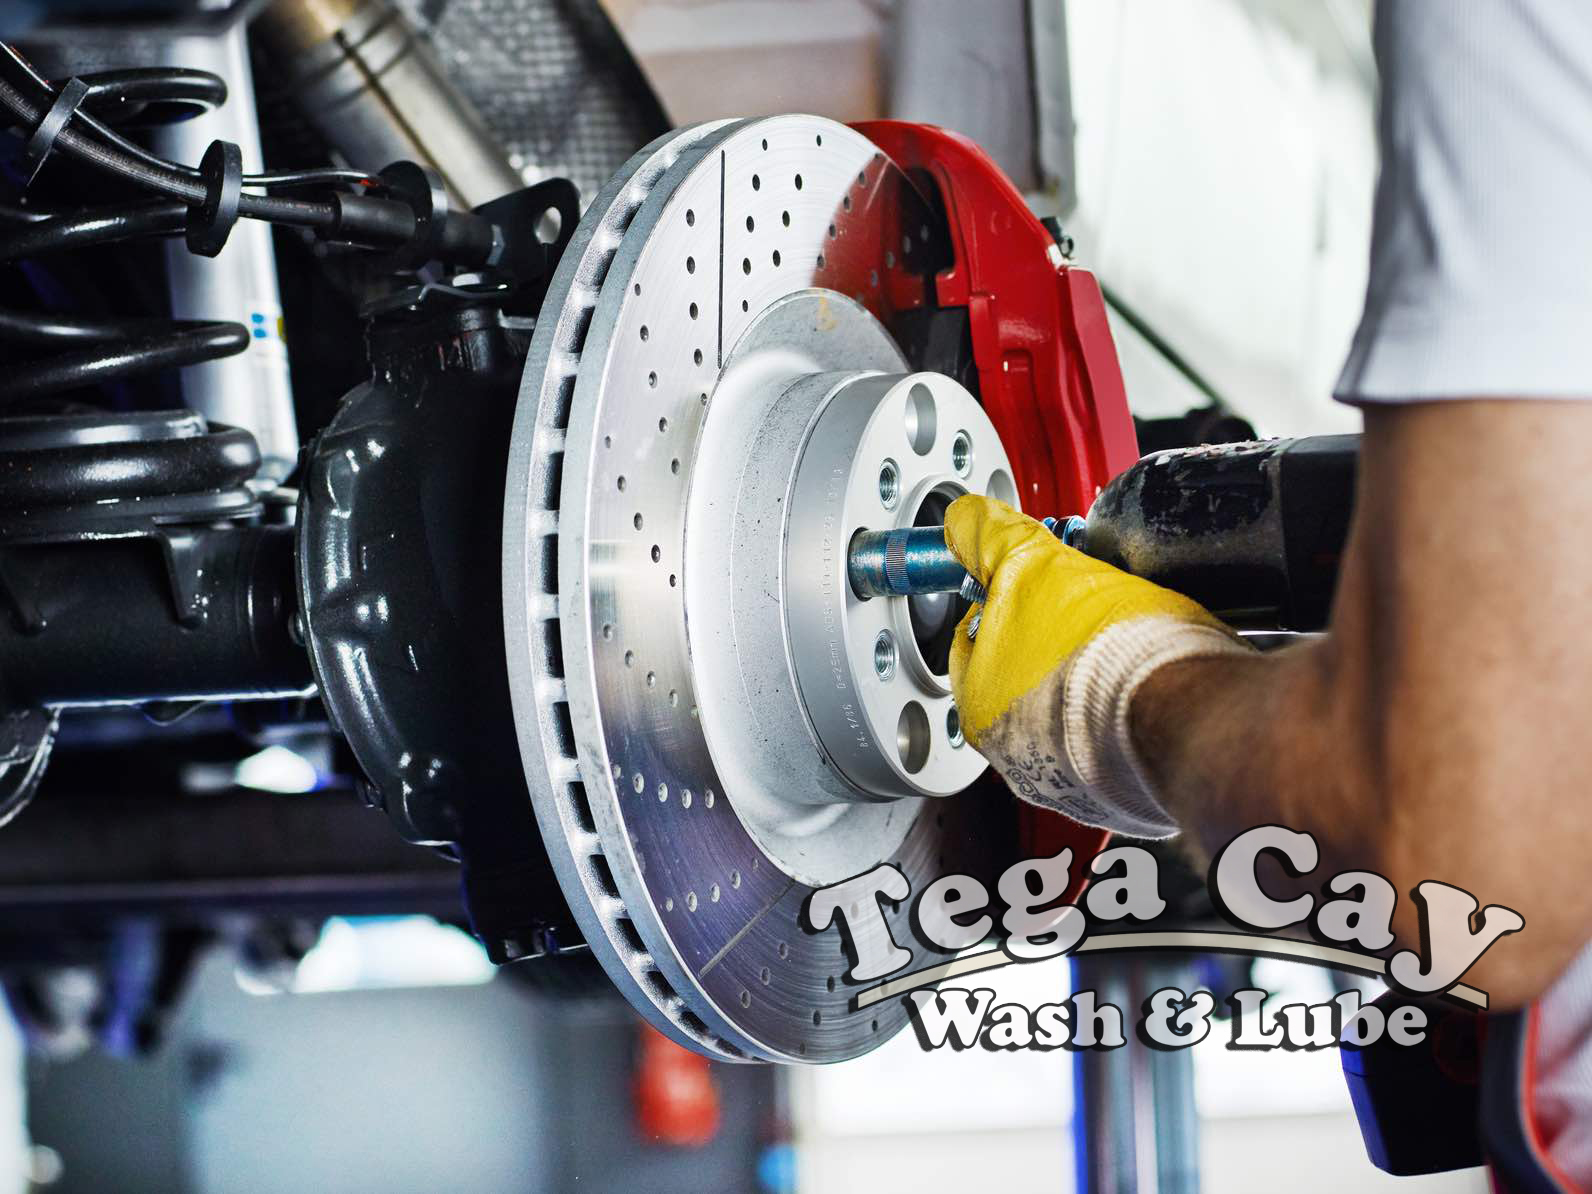 http://tegacaywashandlube.com/wp-content/uploads/Tega-Cay-wash-and-lube-brakes-pads-rotors-replacement-near-me-Fort-Mill.jpg